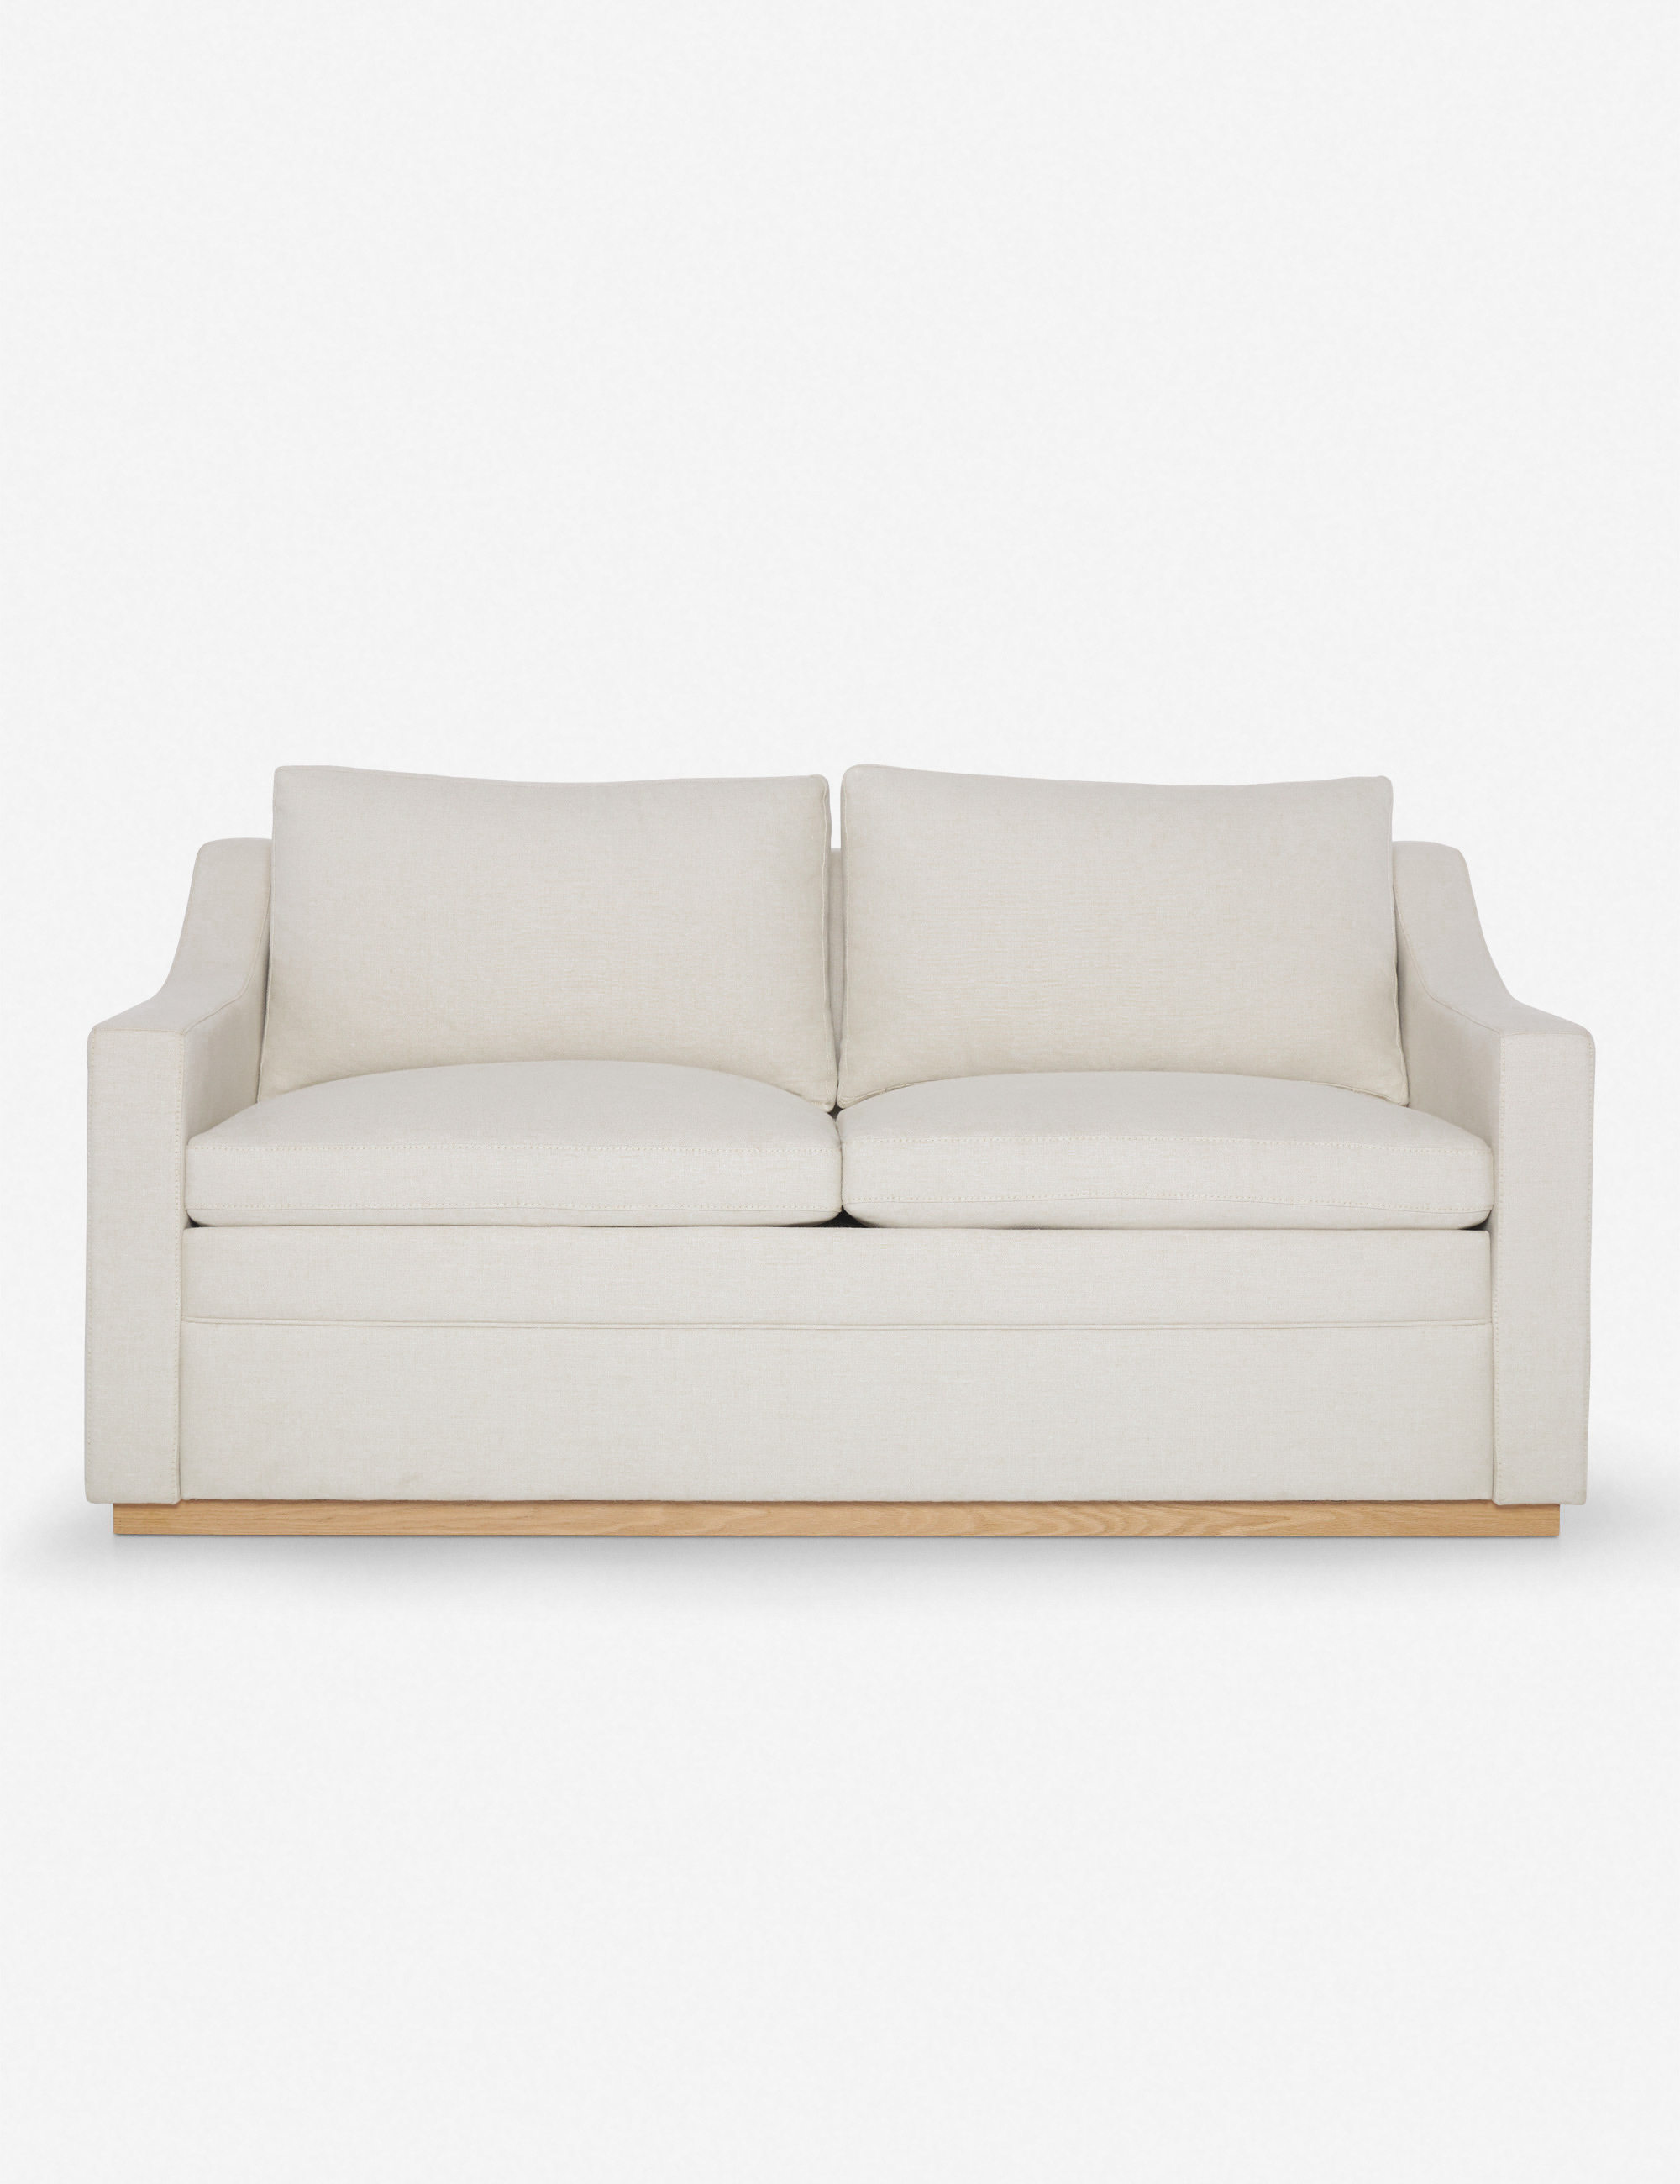 GINNY_MACDONALD_Coniston-Sleeper-Sofa-Linen-Natural